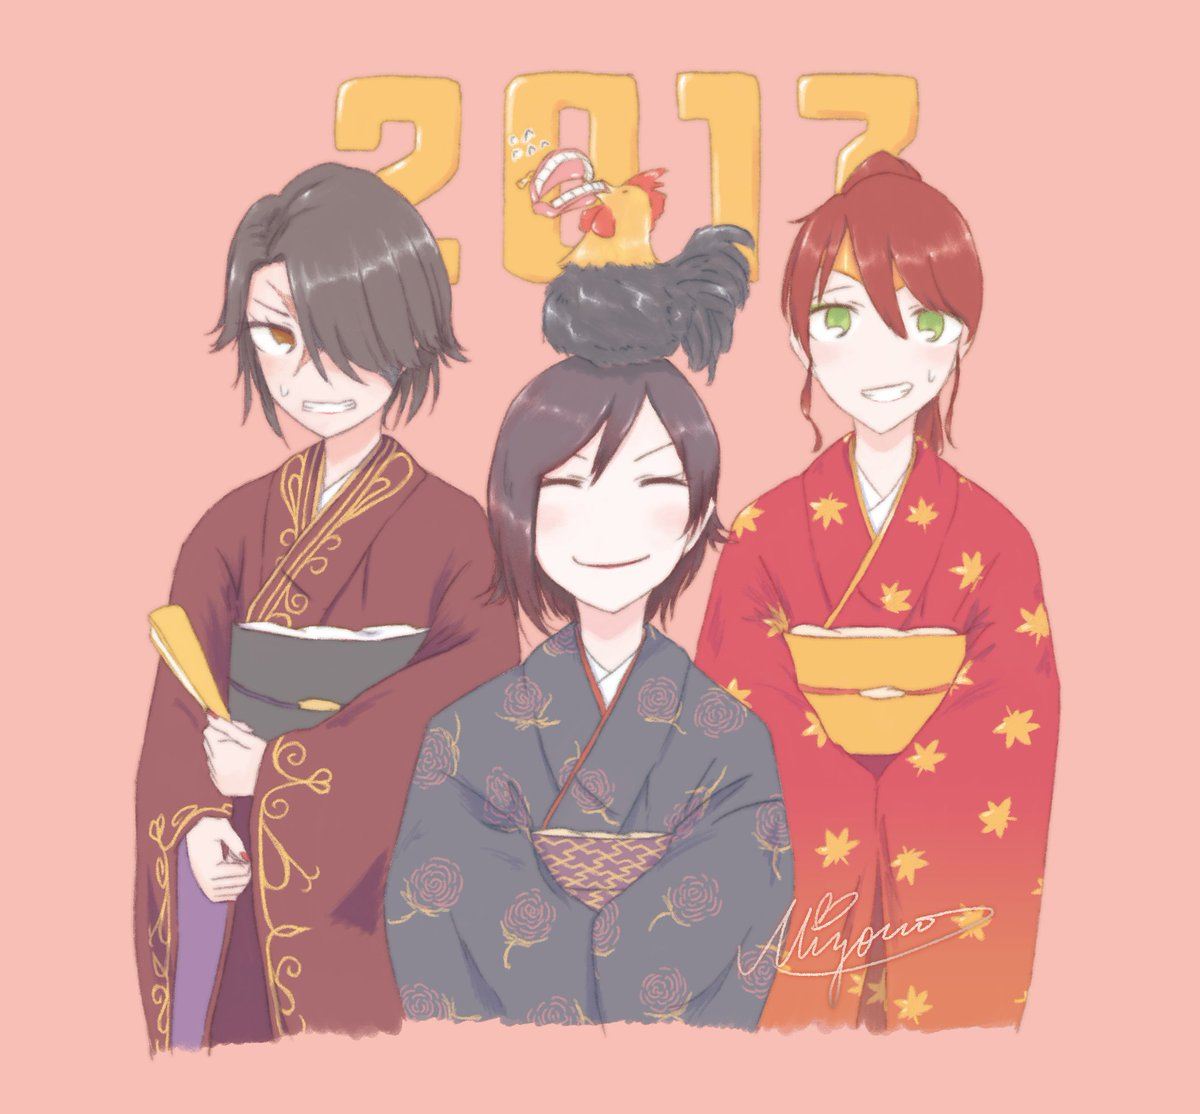 I&#39;m so very late for new year greetings! But just now I managed to draw it! Happy new year 2017 #RWBY <br>http://pic.twitter.com/9ZqRLl6Wof